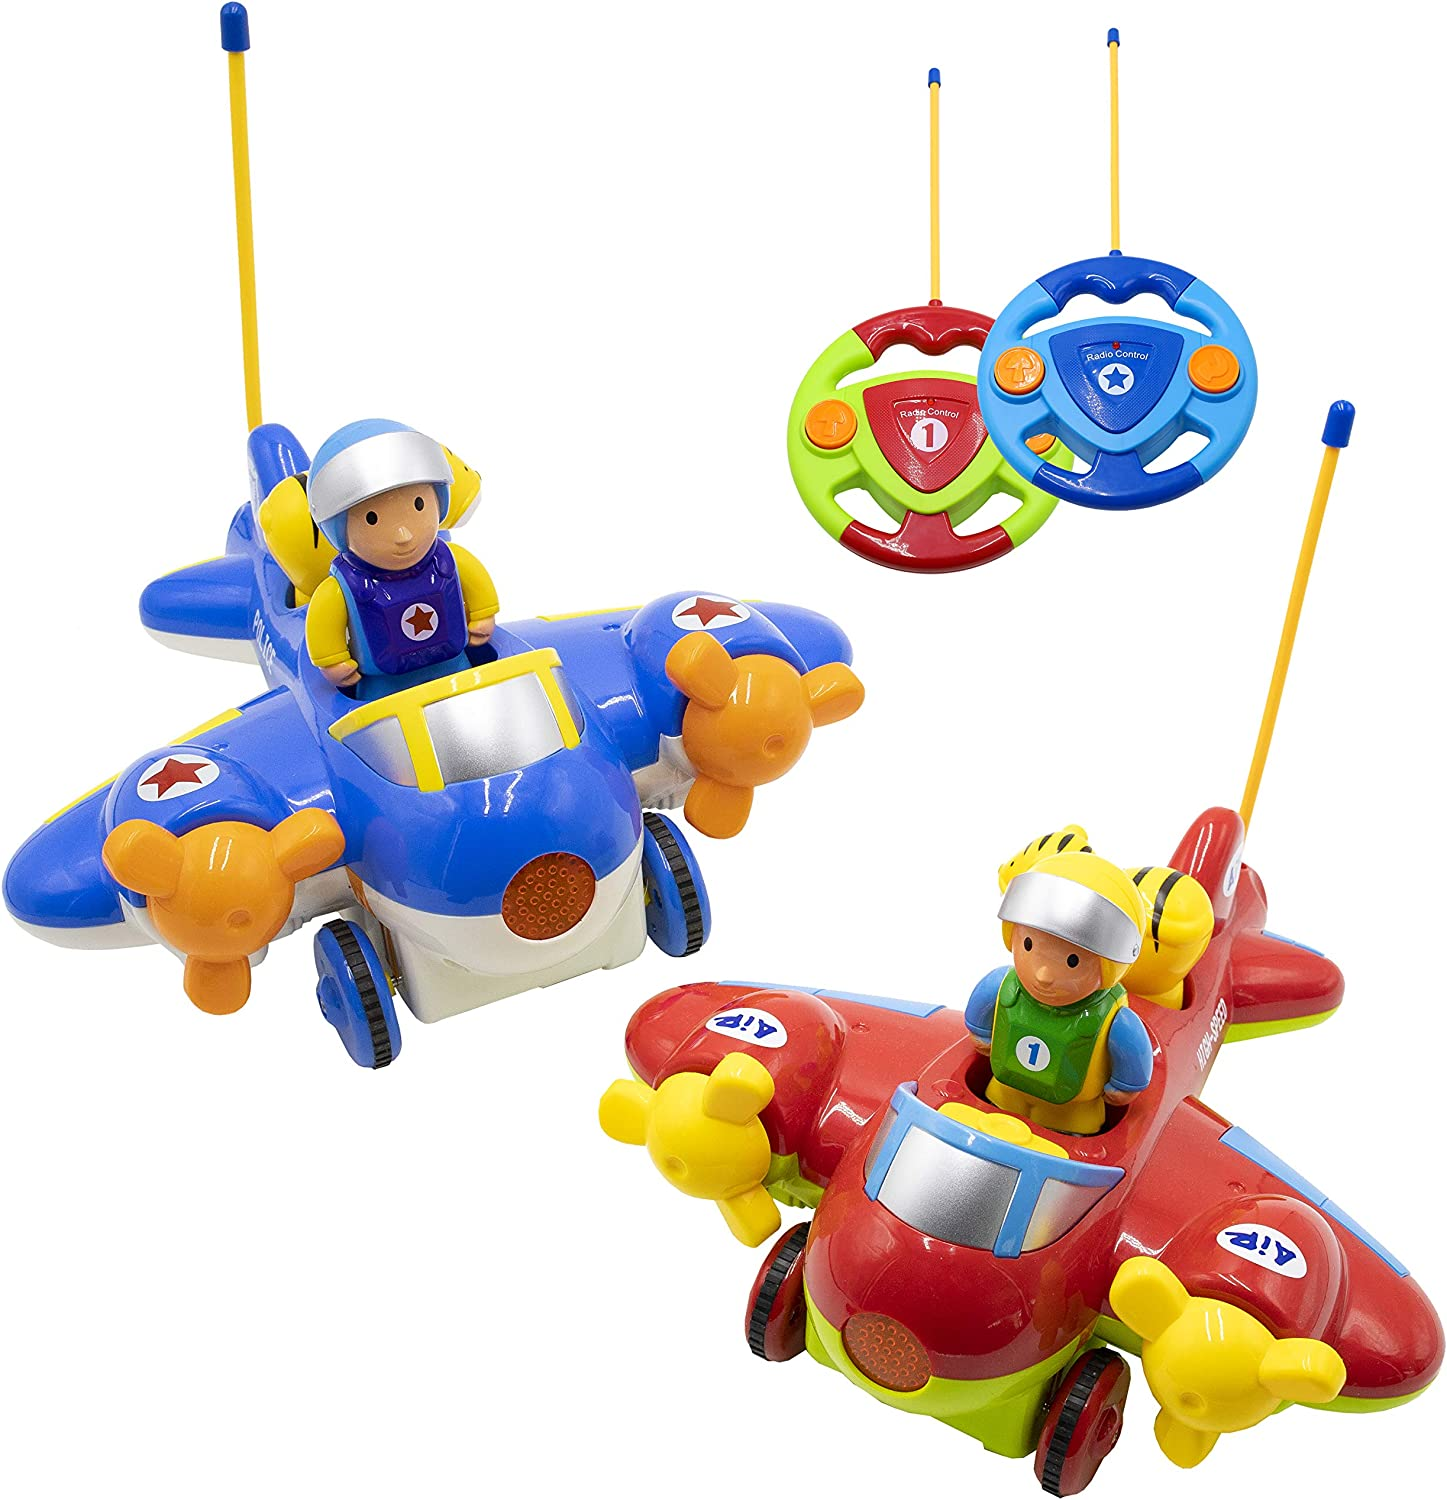 Remote Control 2 Channel Cartoon Airplane Music /& Light /& Sound Educational Toy@